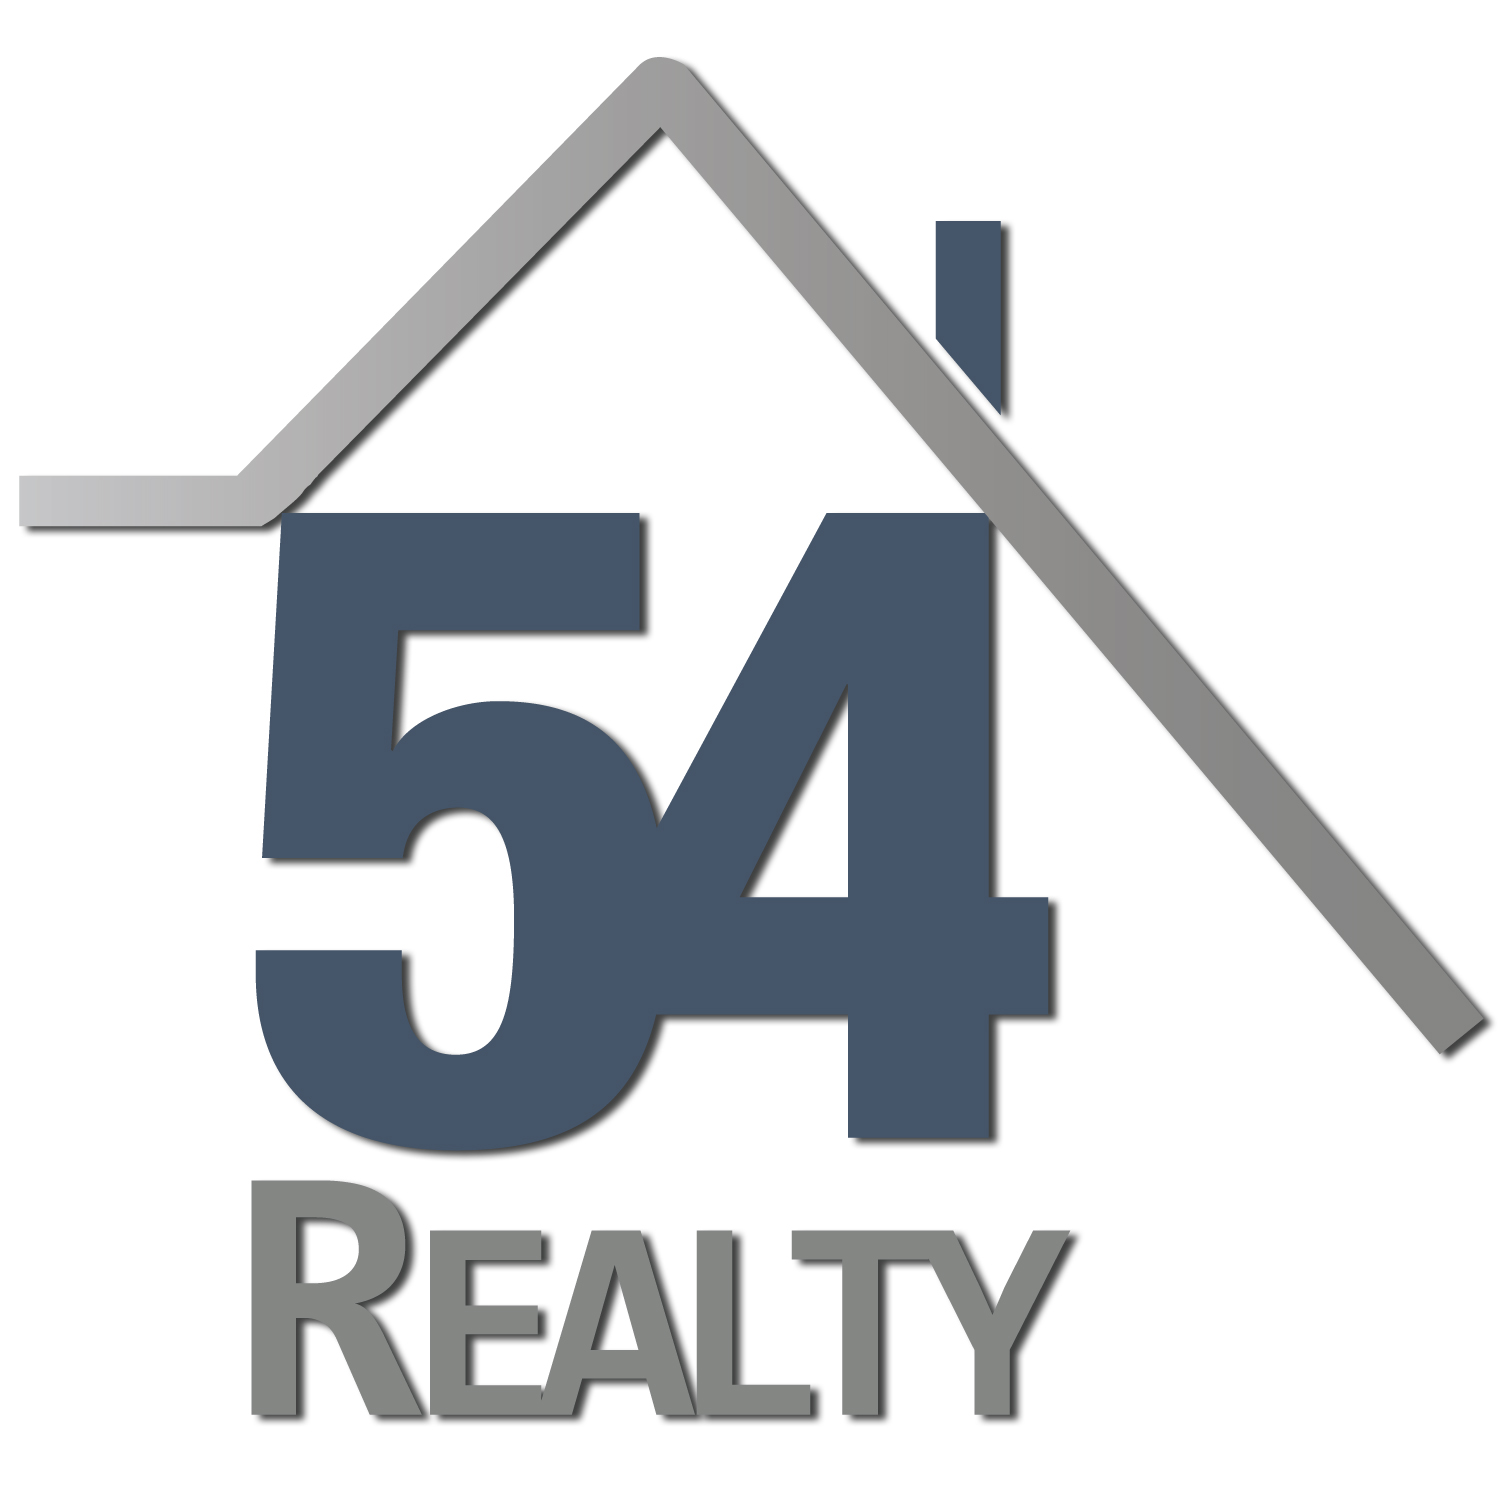 54 Realty Group logo